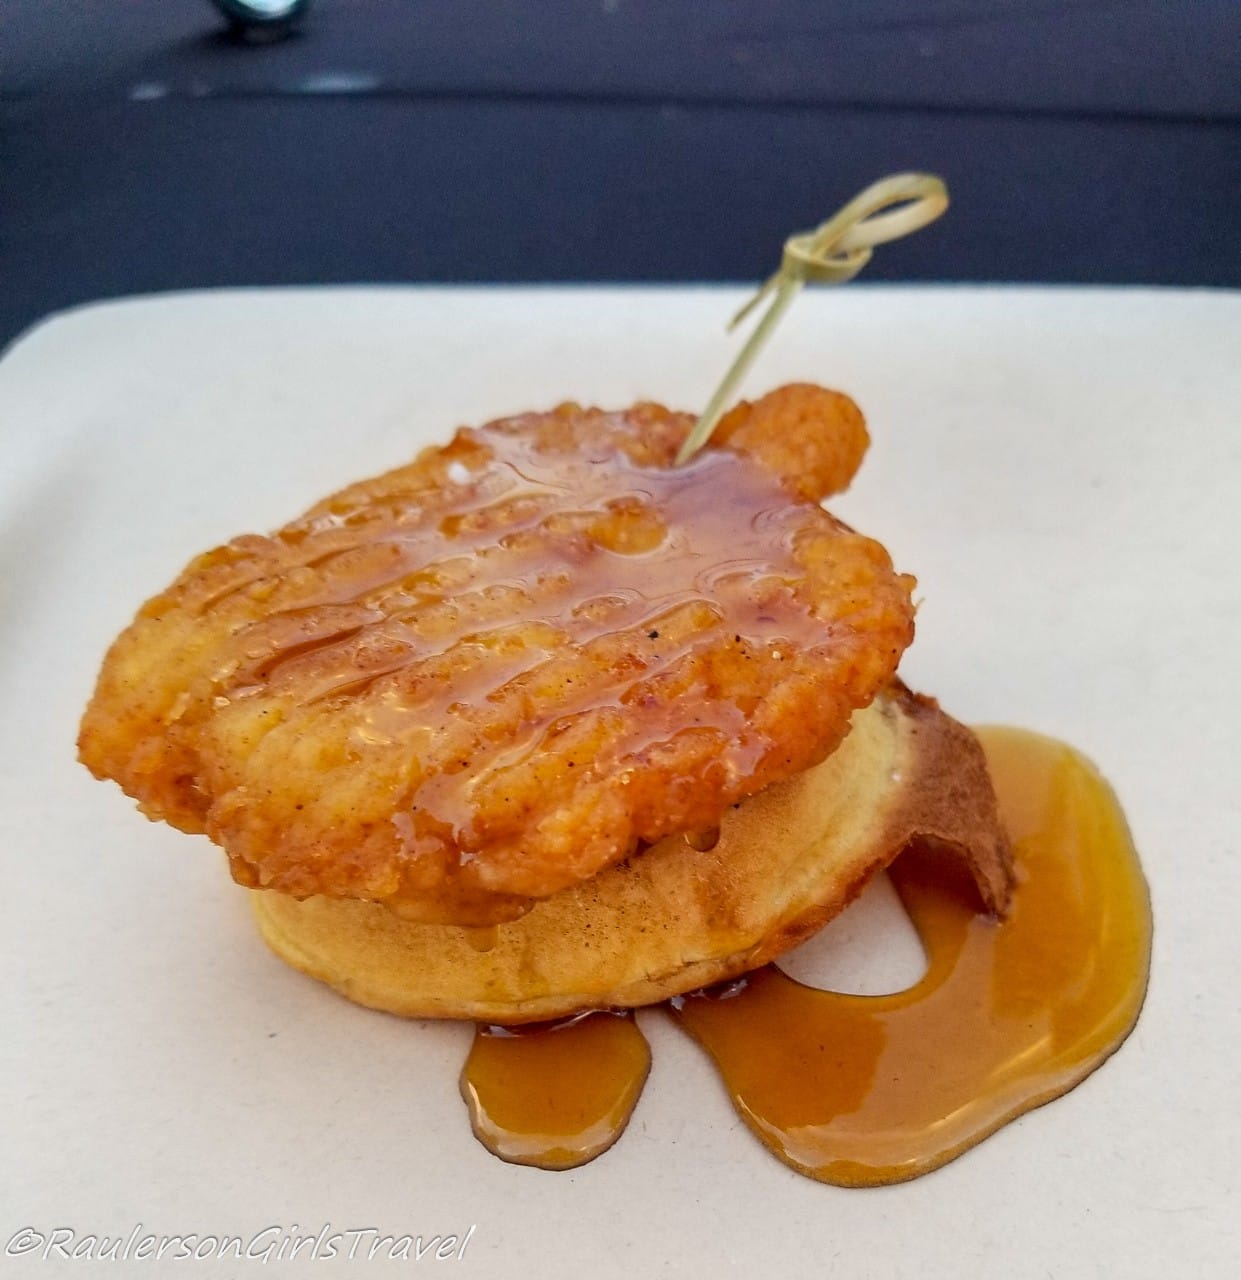 Chicken and Waffles at the Peabody Hotel Rooftop